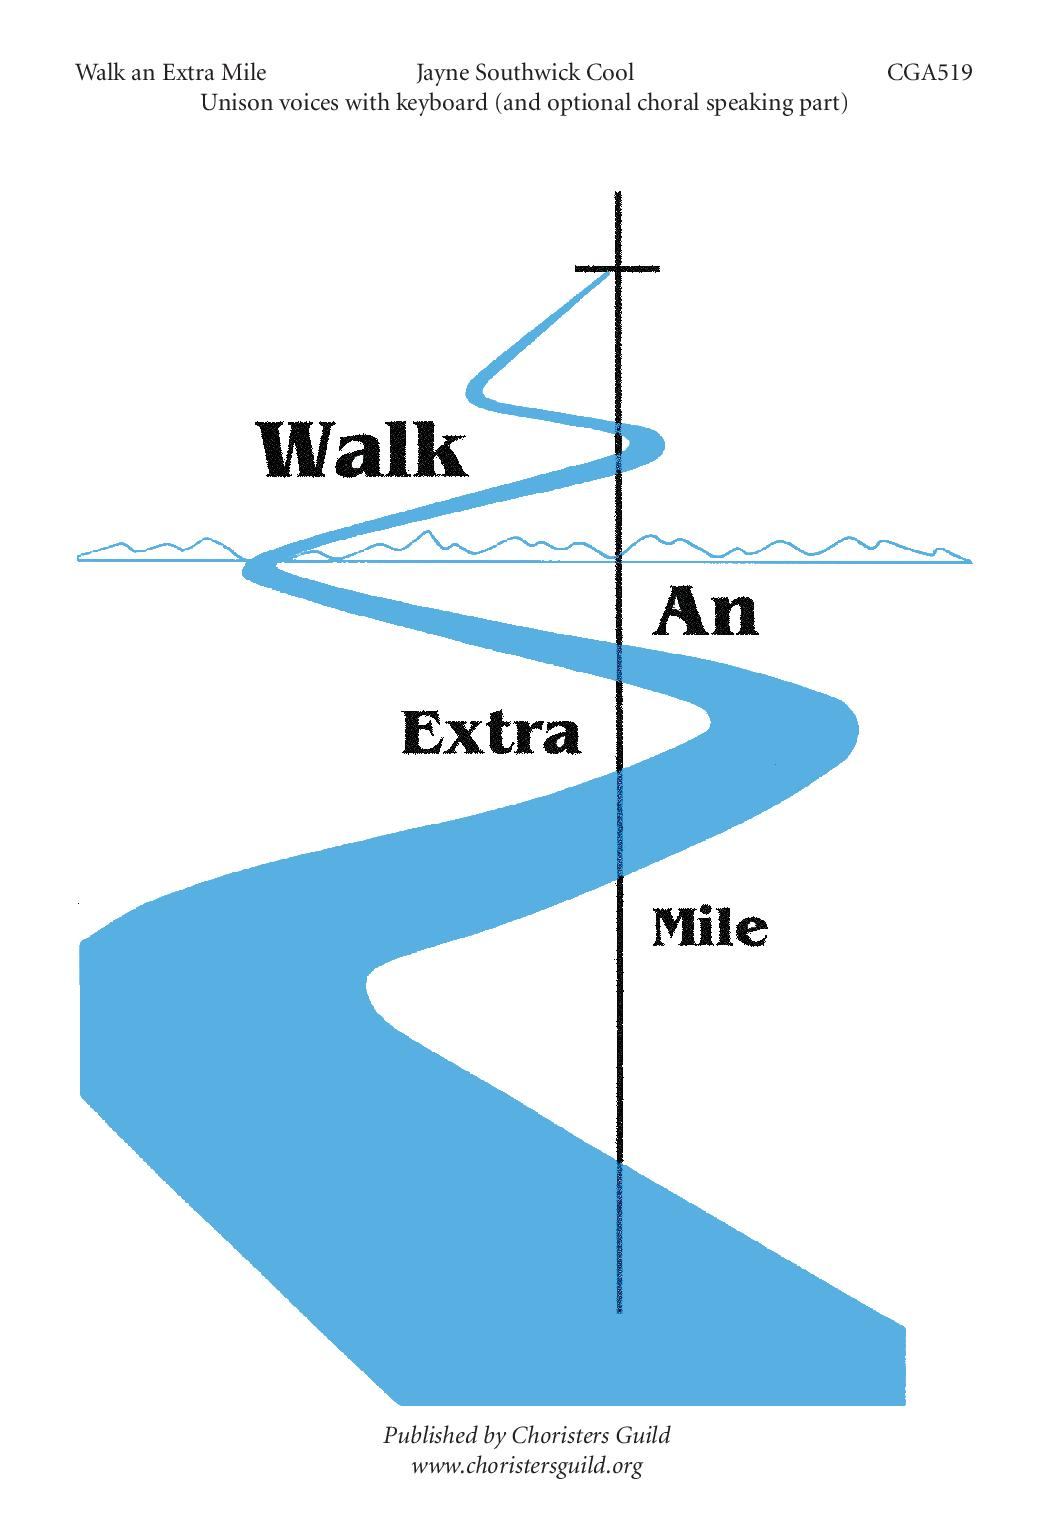 Walk an Extra Mile